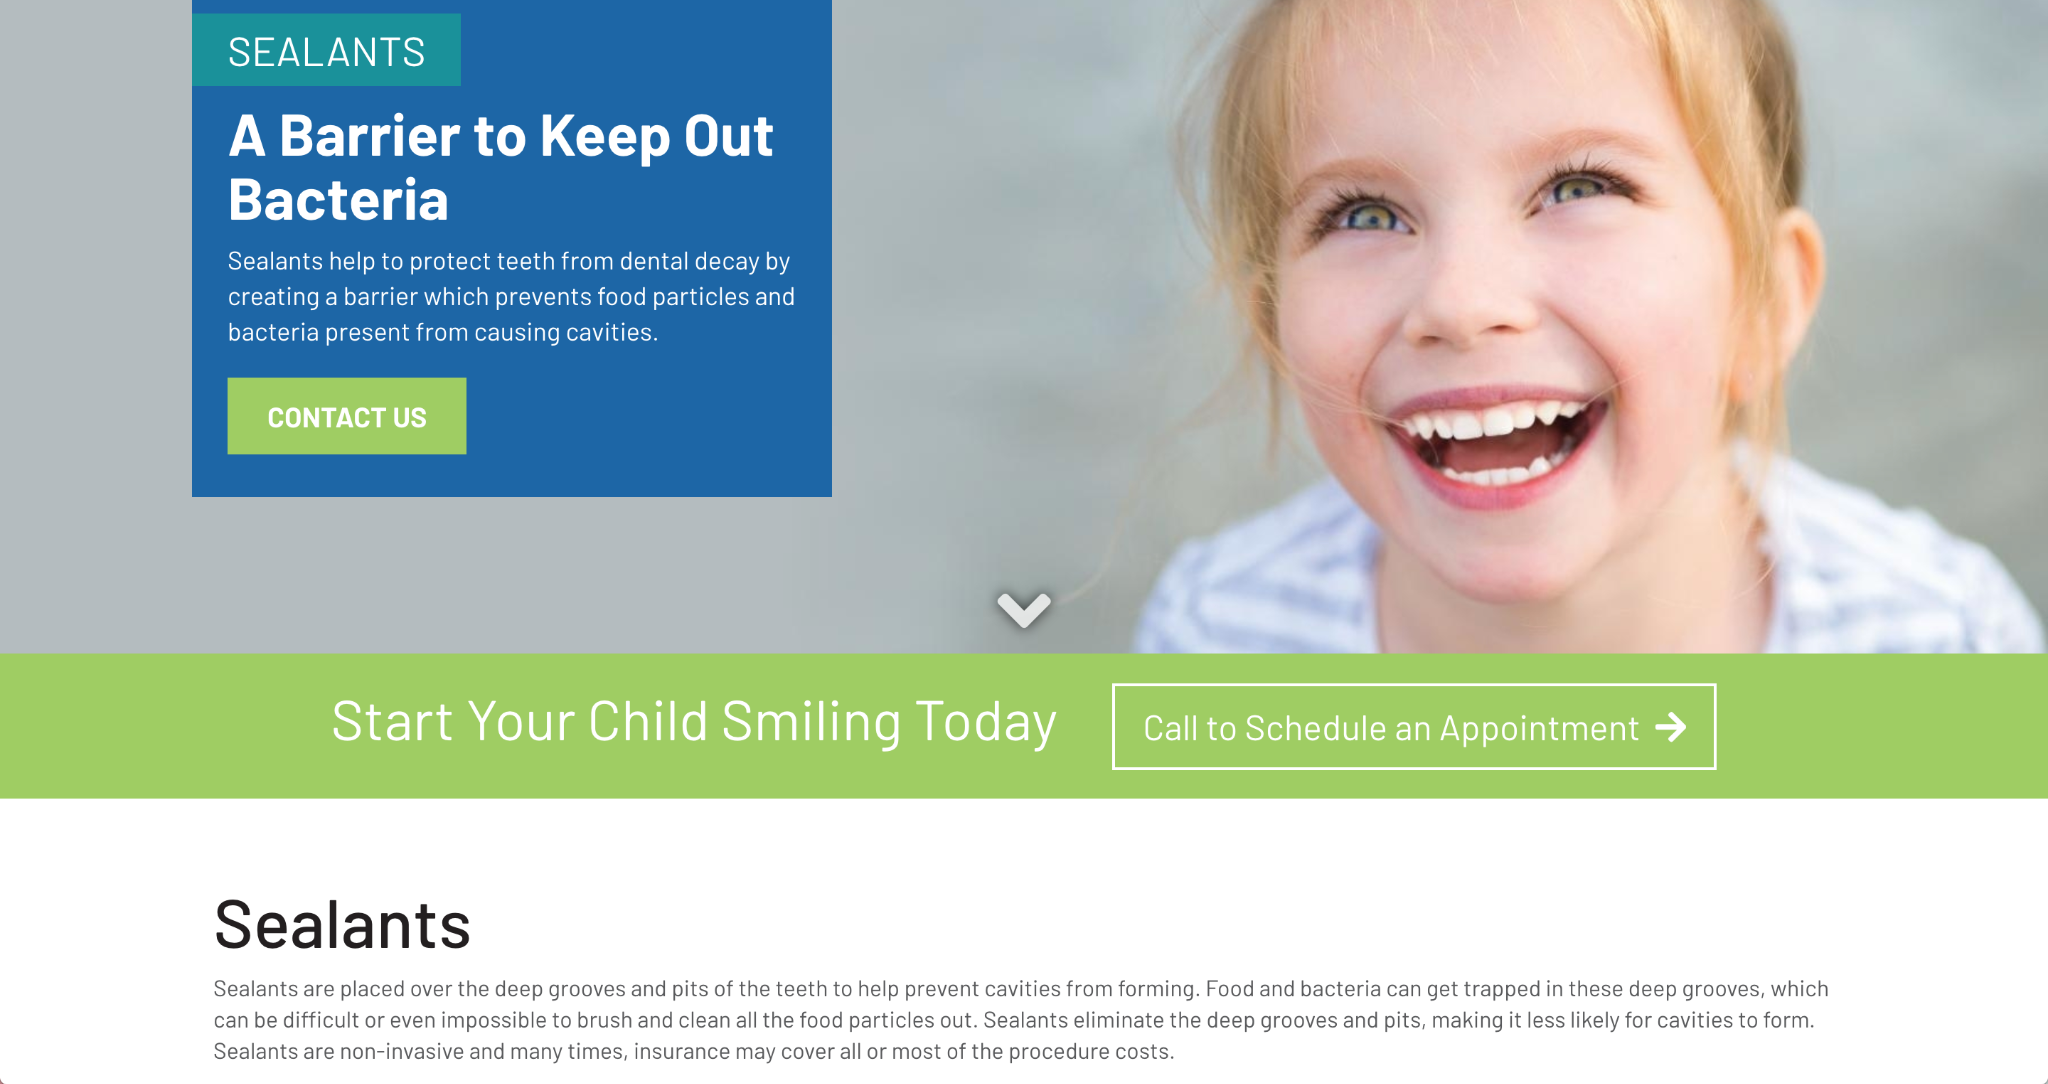 Attract More Dental Patients